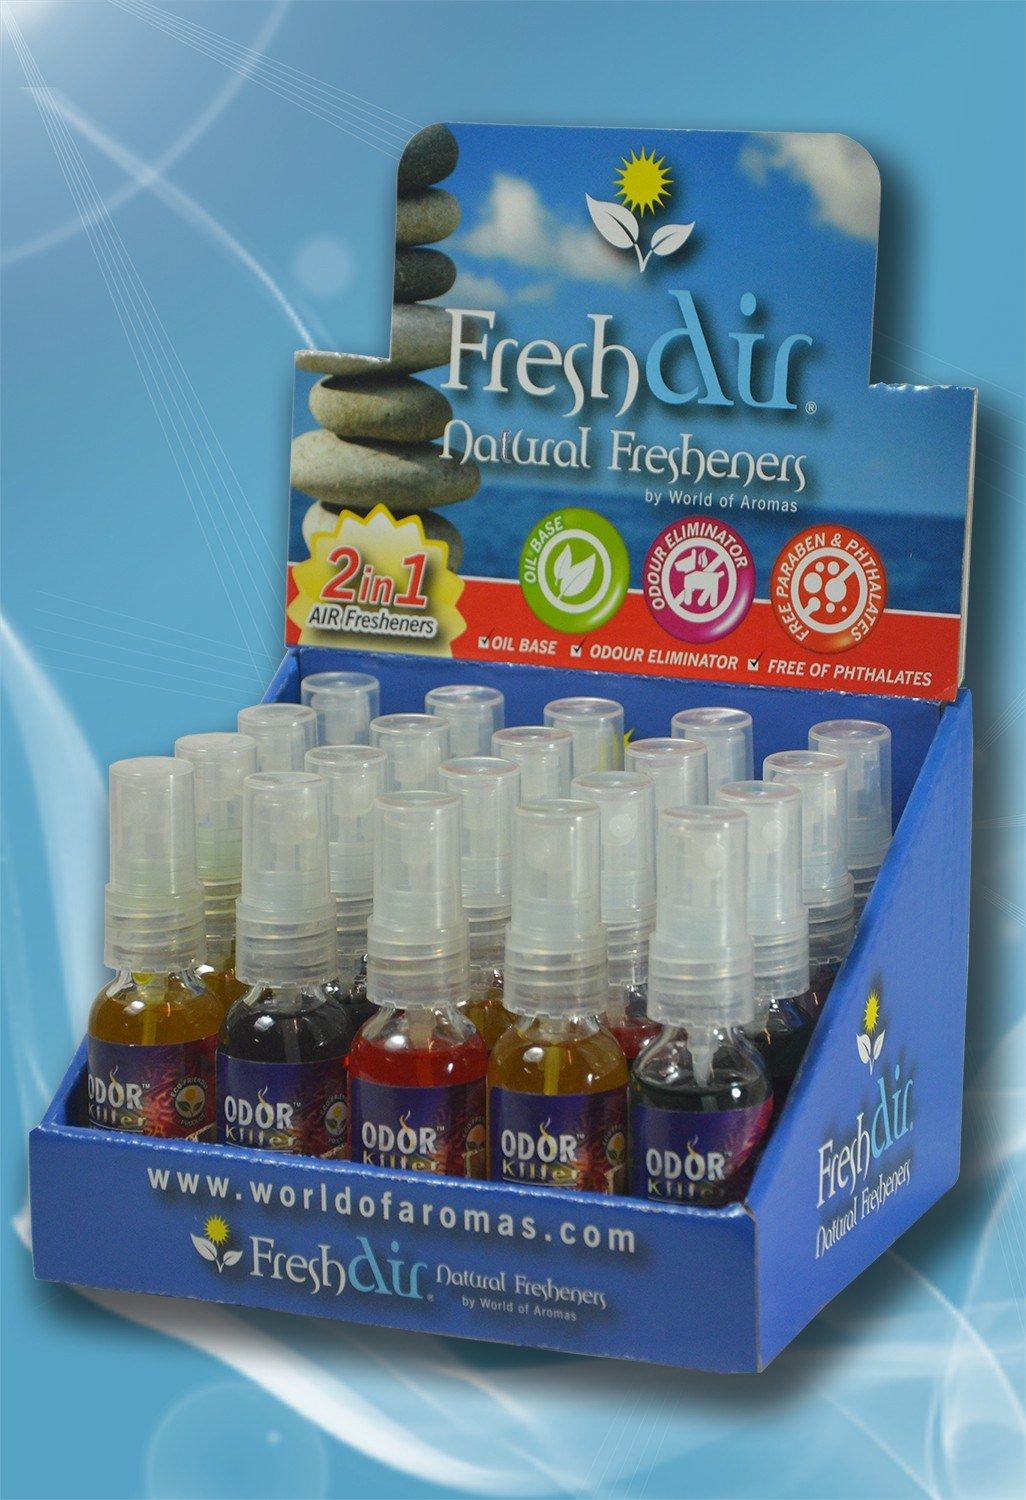 Odor Killer with Air Freshener